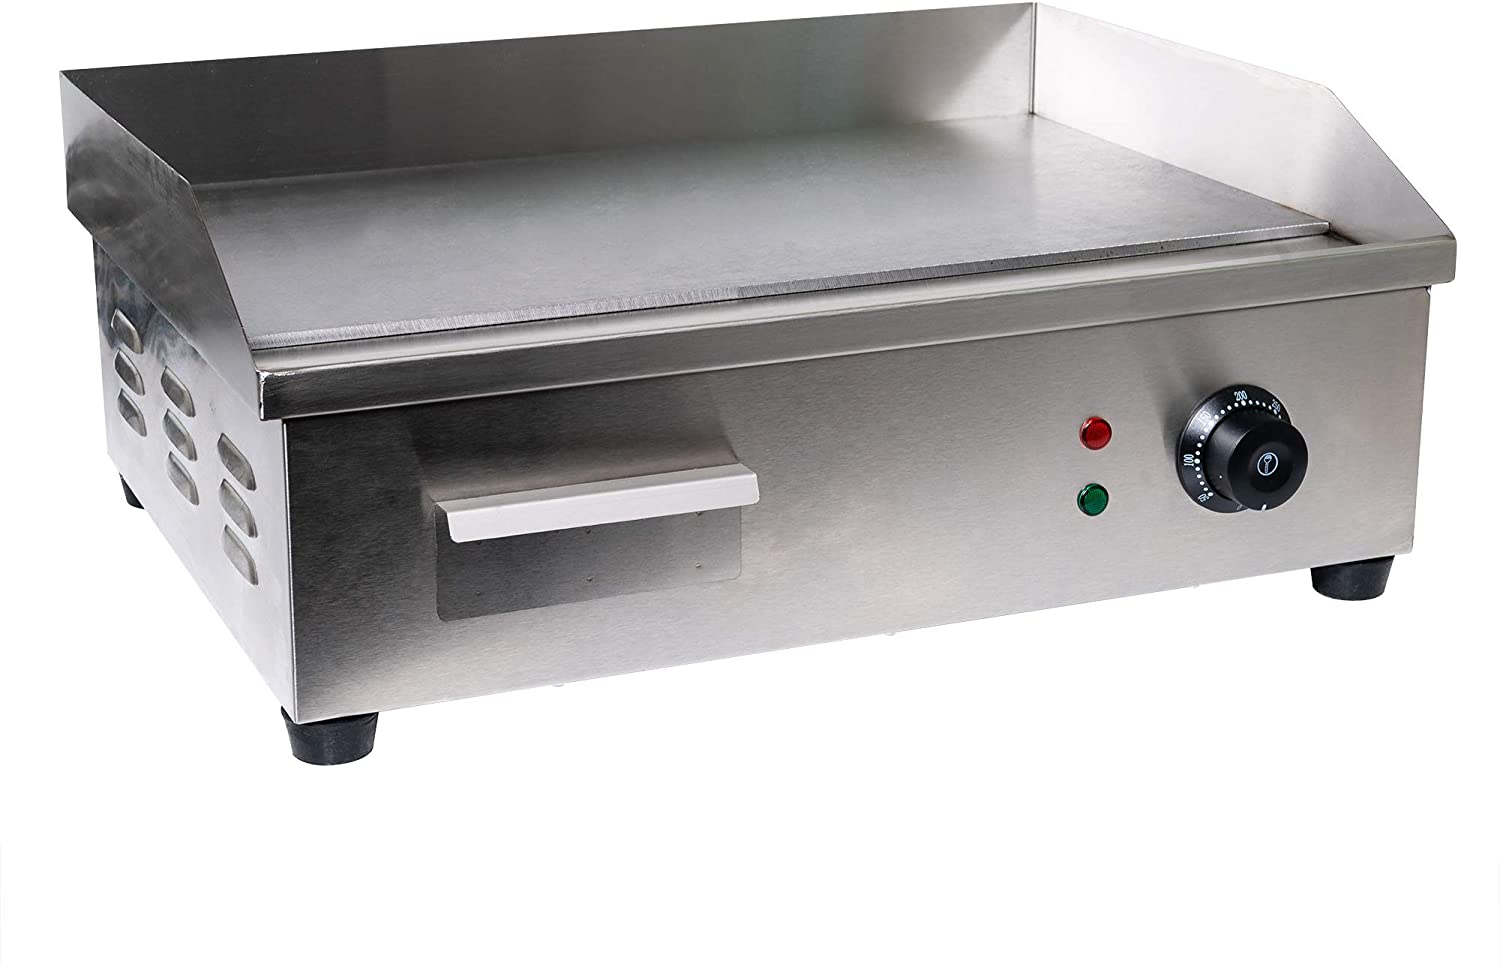 http://ratecookery.com/best-electric-griddle/